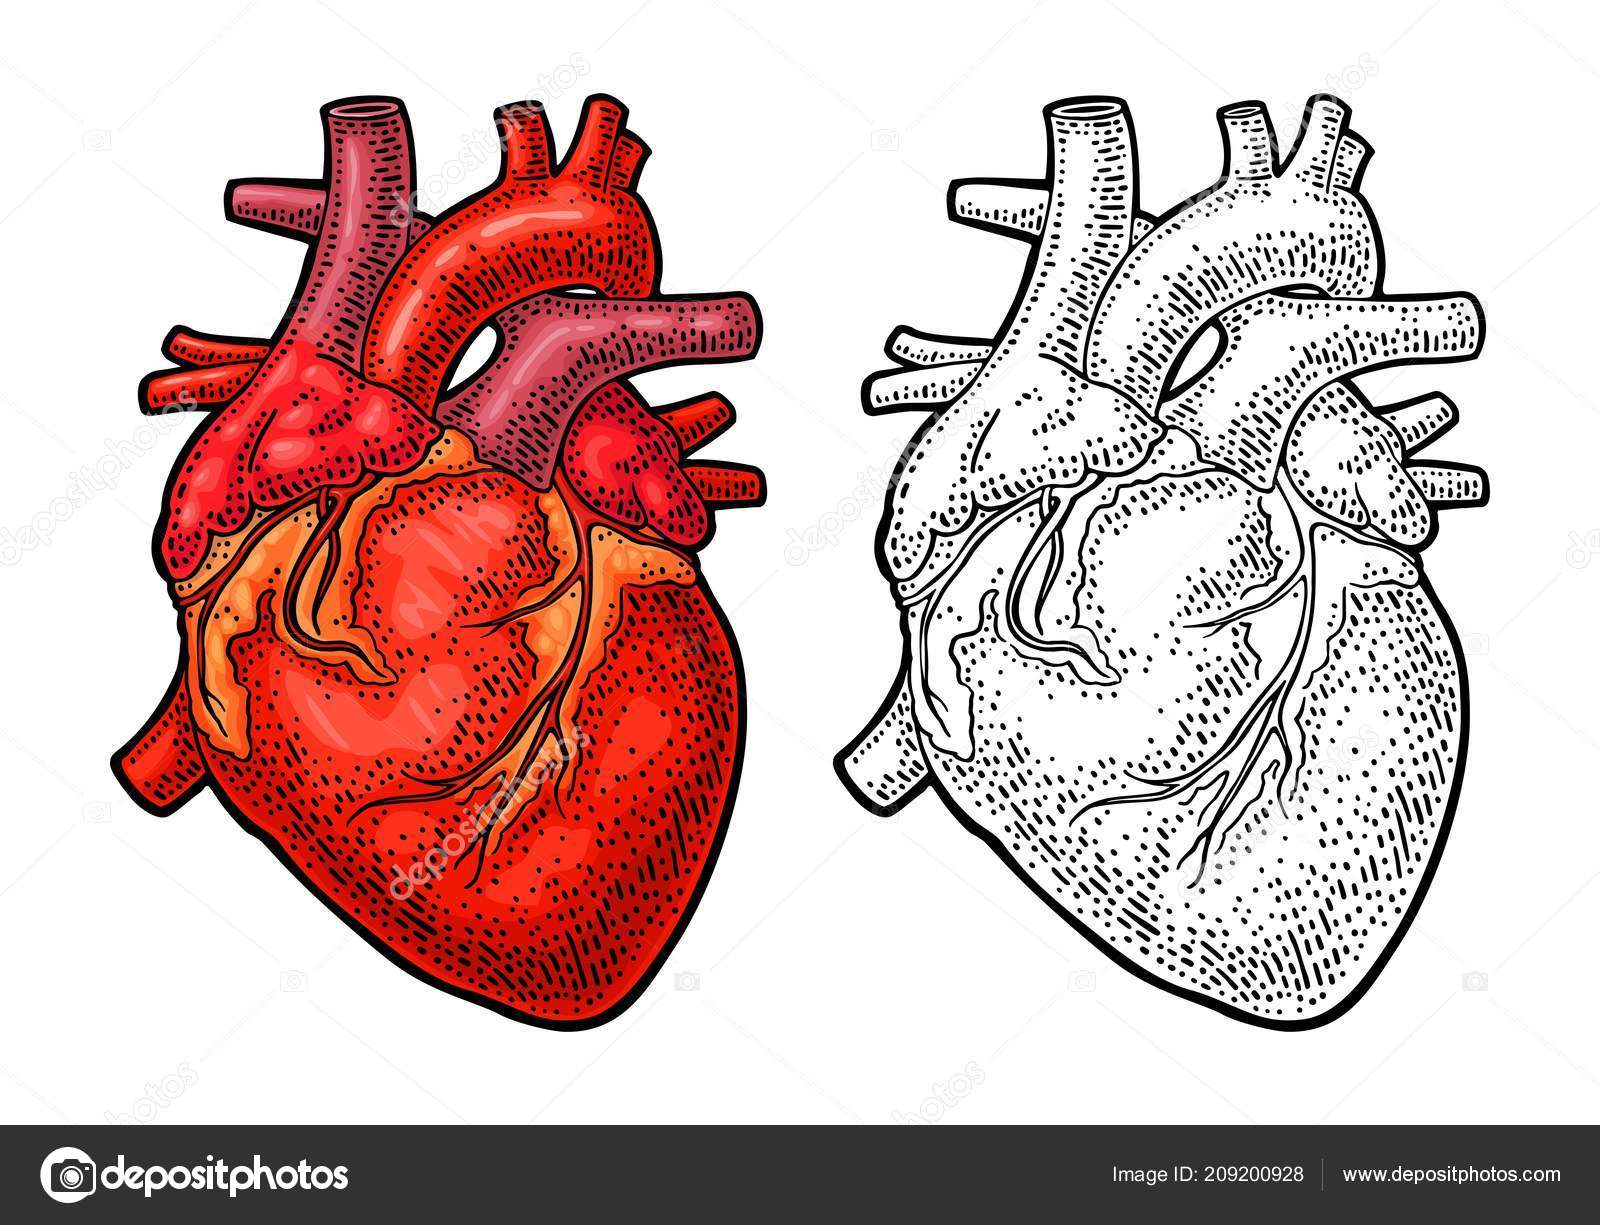 Human Anatomy Heart Vector Black Color Vintage Engraving ...